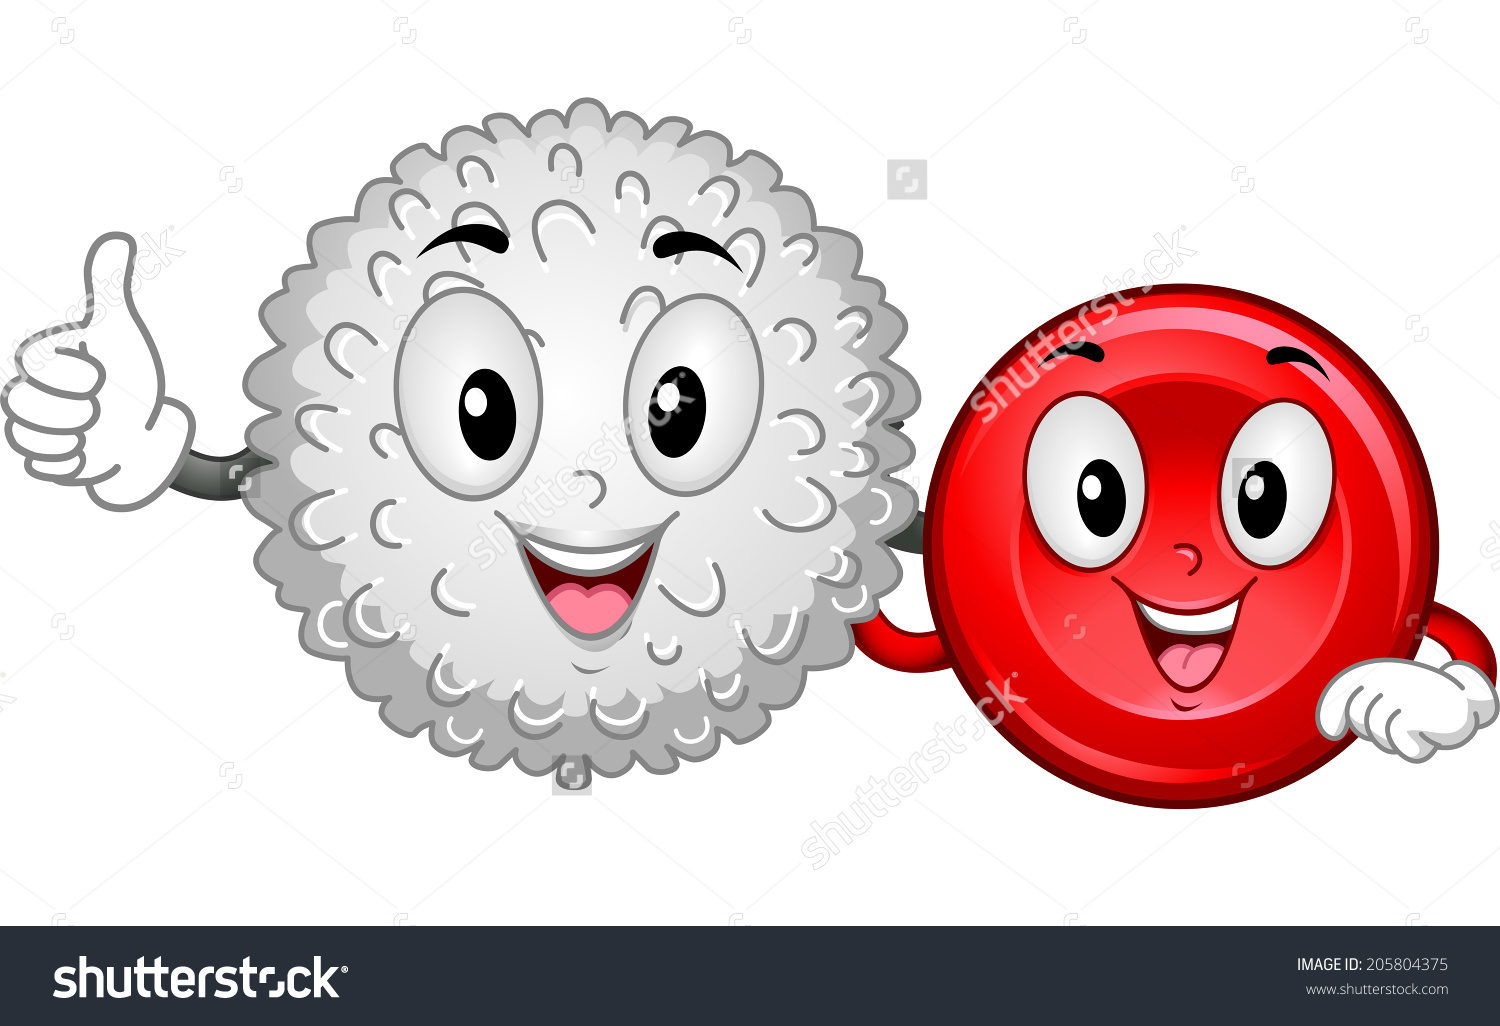 White blood cell clipart clip art transparent stock Mascot Illustration Featuring White Blood Cell Stock Vector ... clip art transparent stock